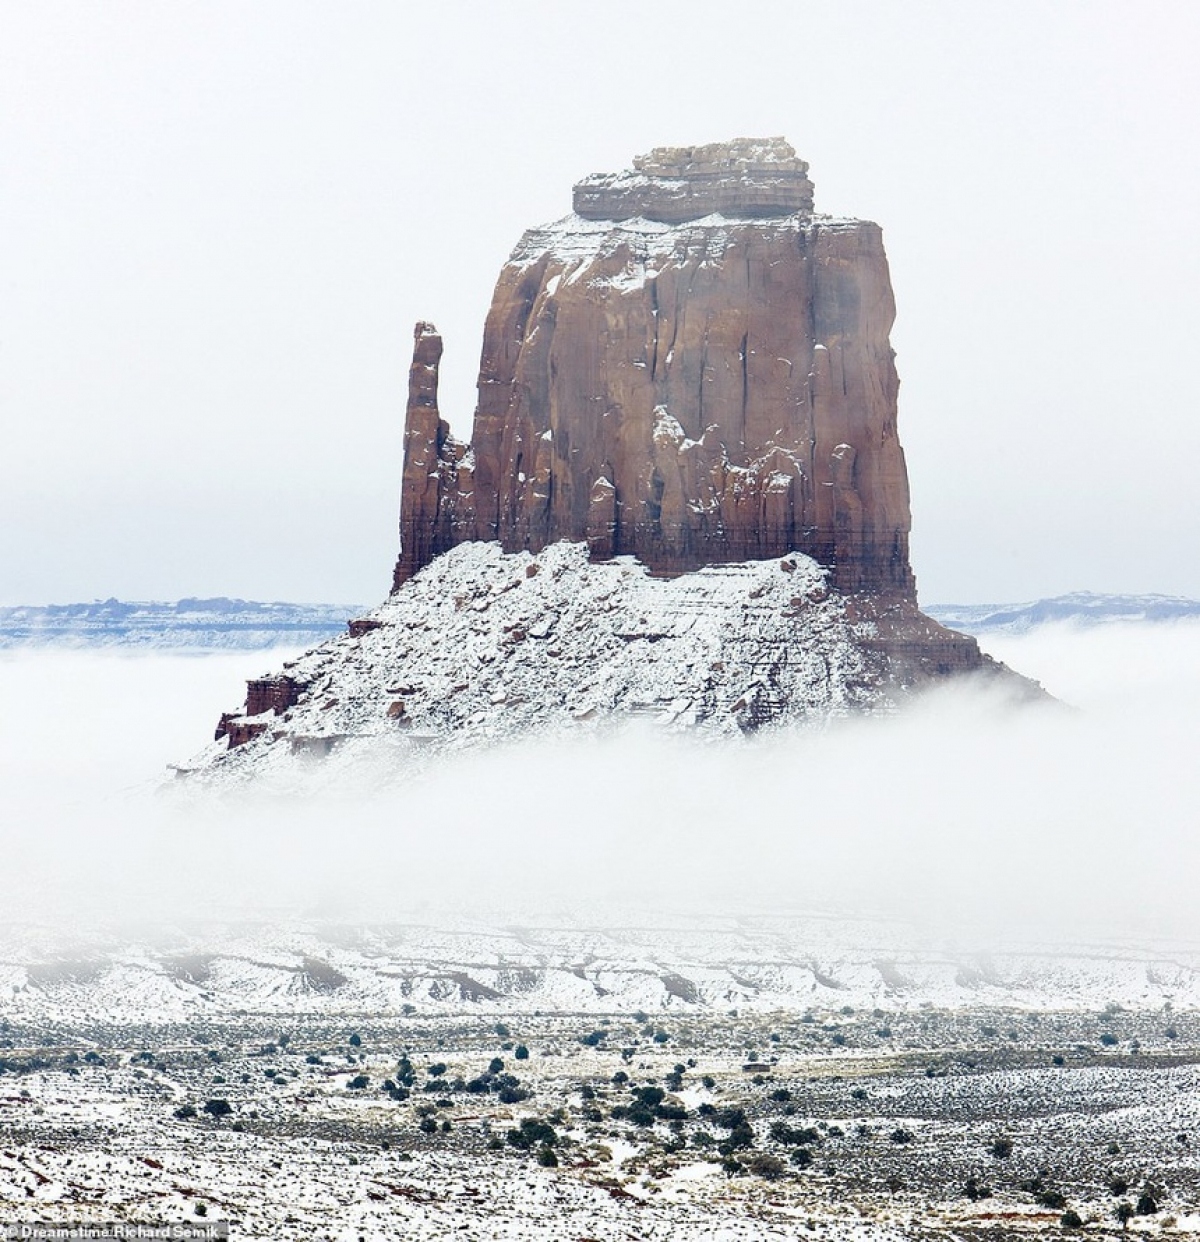 East Mitten Vutte in Monument Valley of Arizona in the US.